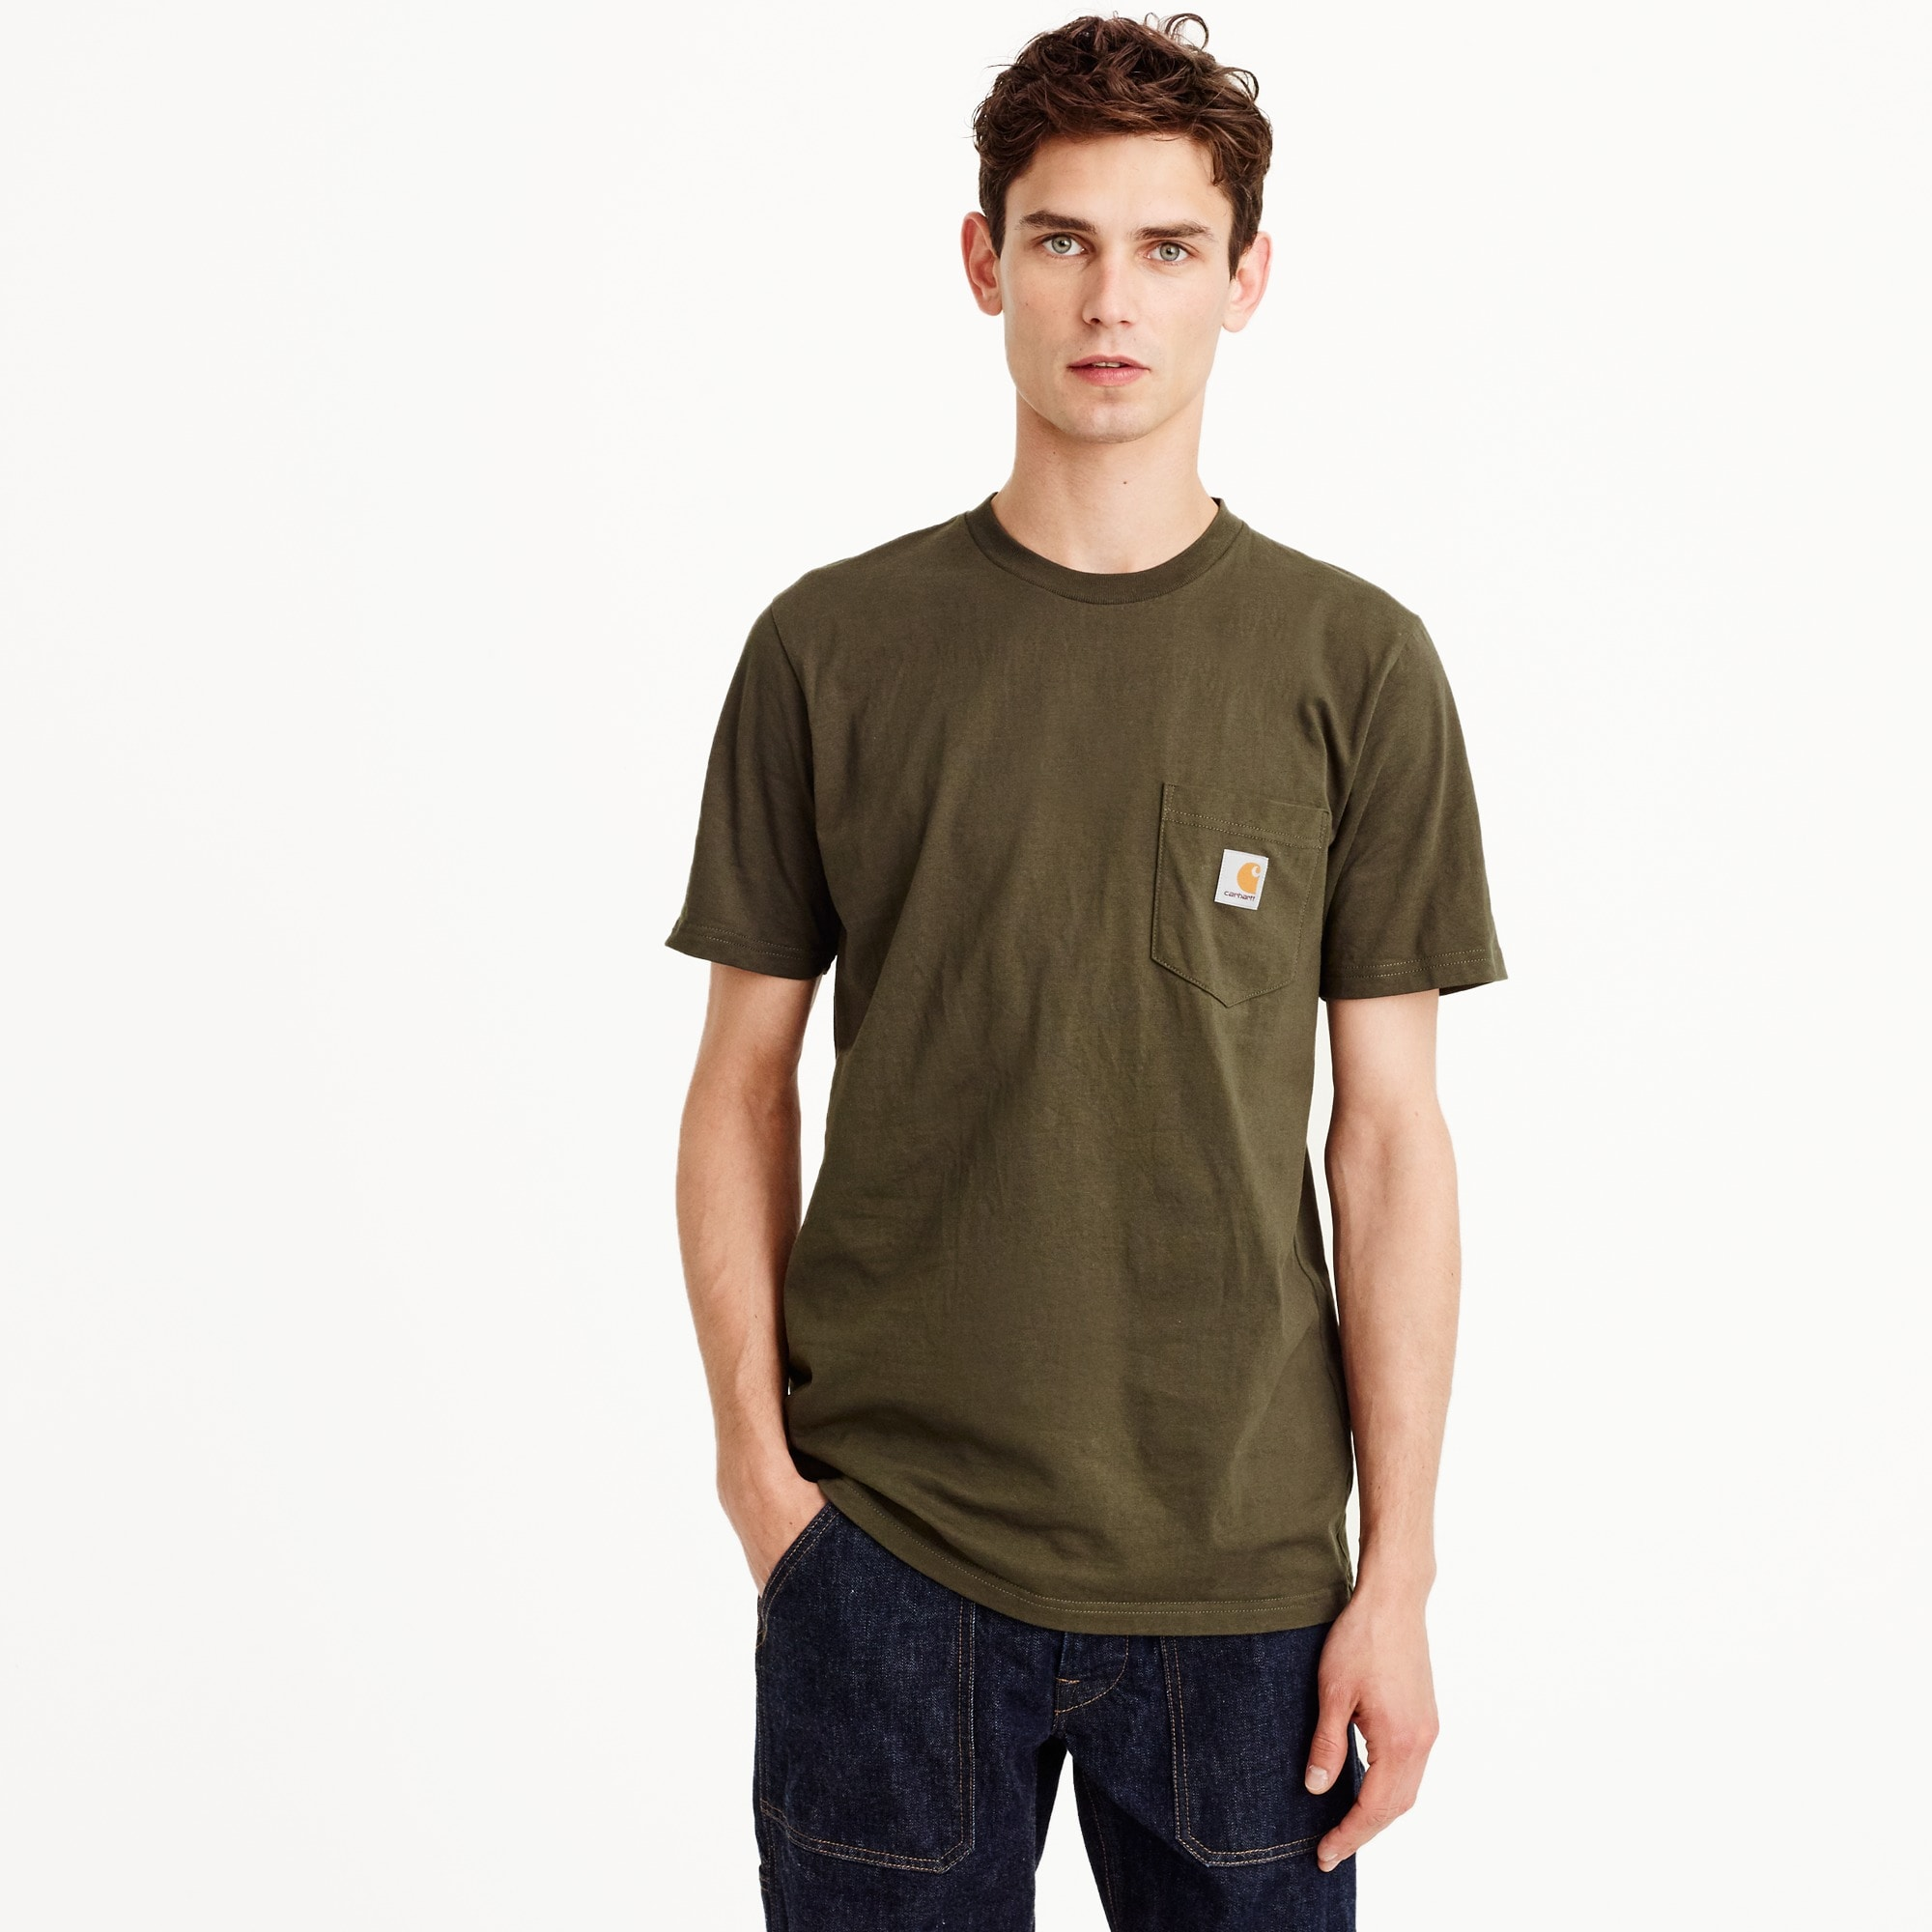 Carhartt® Work in Progress pocket T-shirt men j.crew in good company c